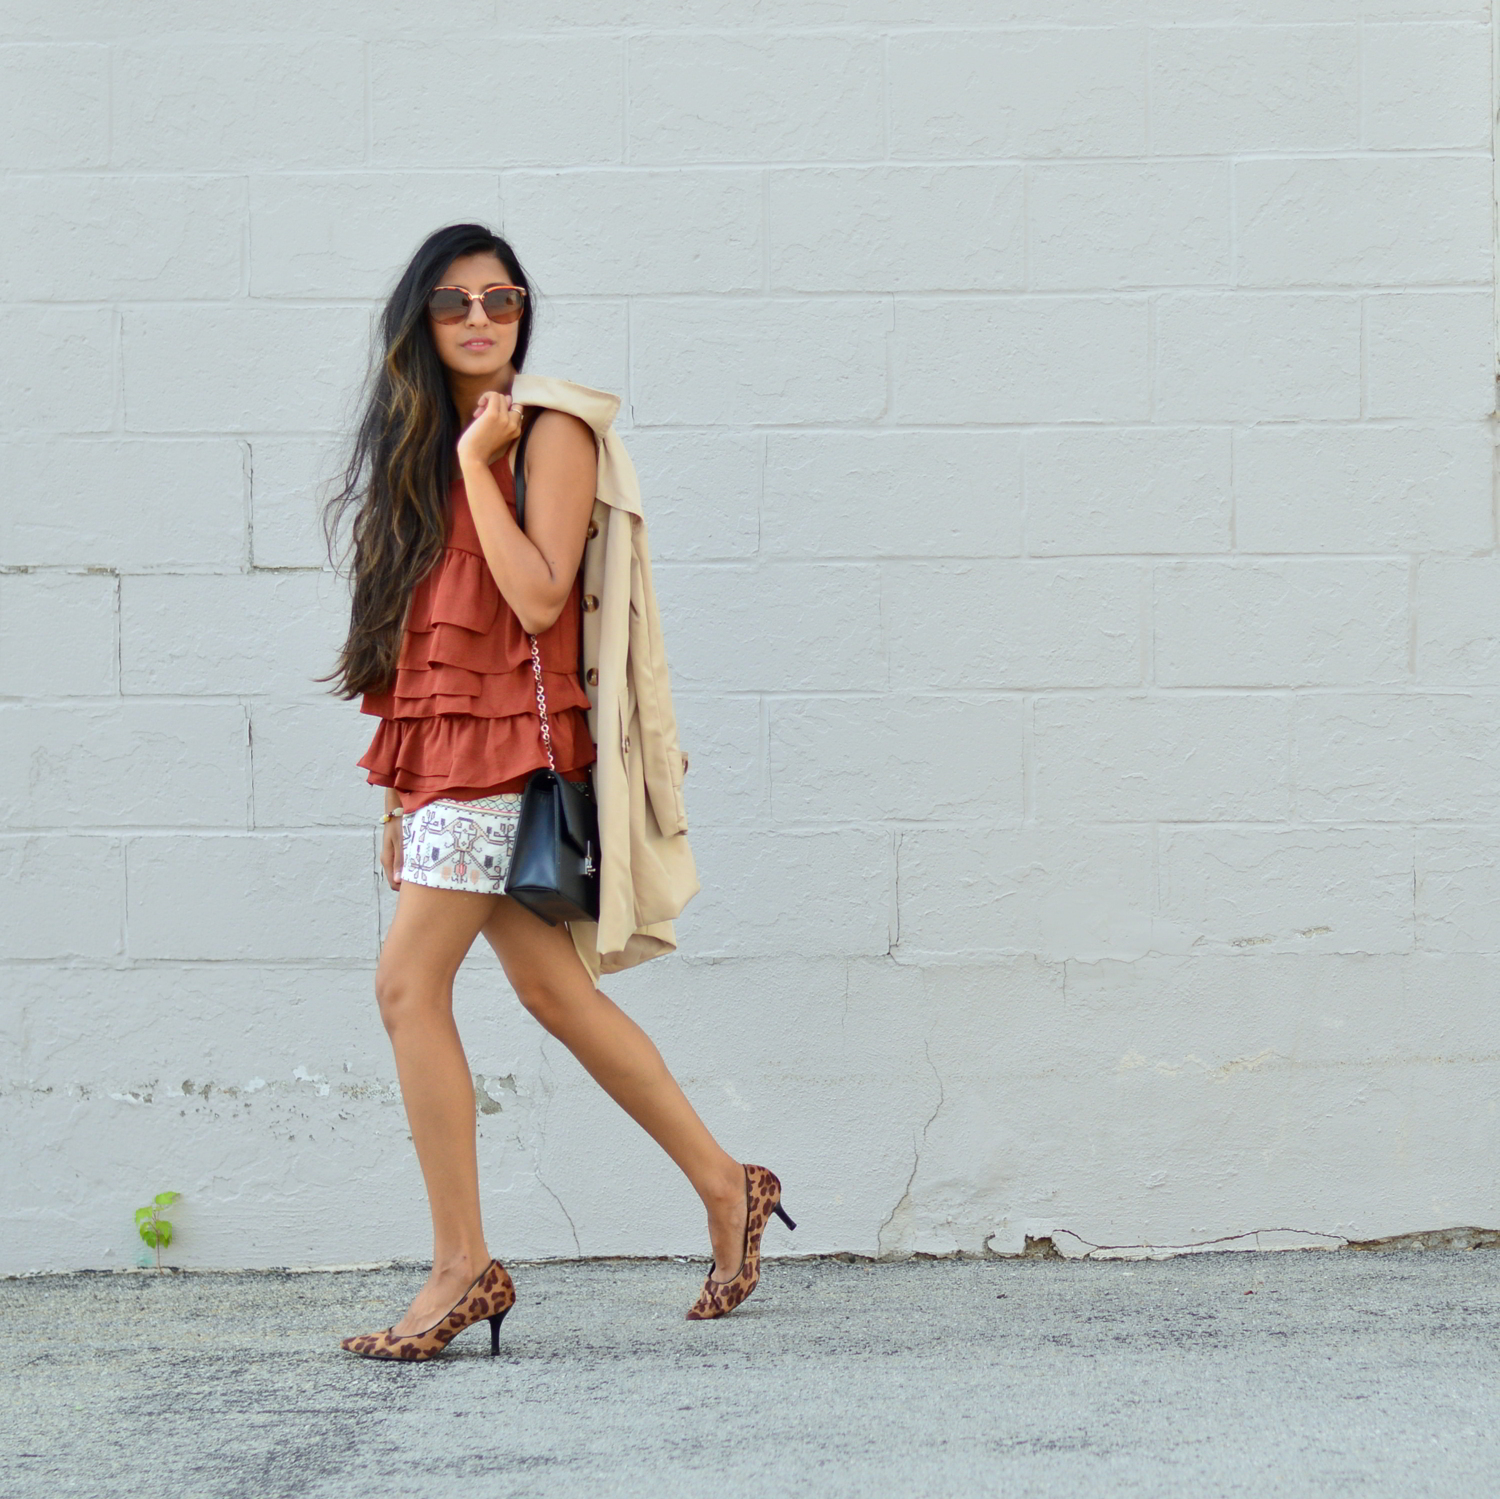 ruffles-embroidered-shorts-summer-style-fall-trends-blogger-outfit 5